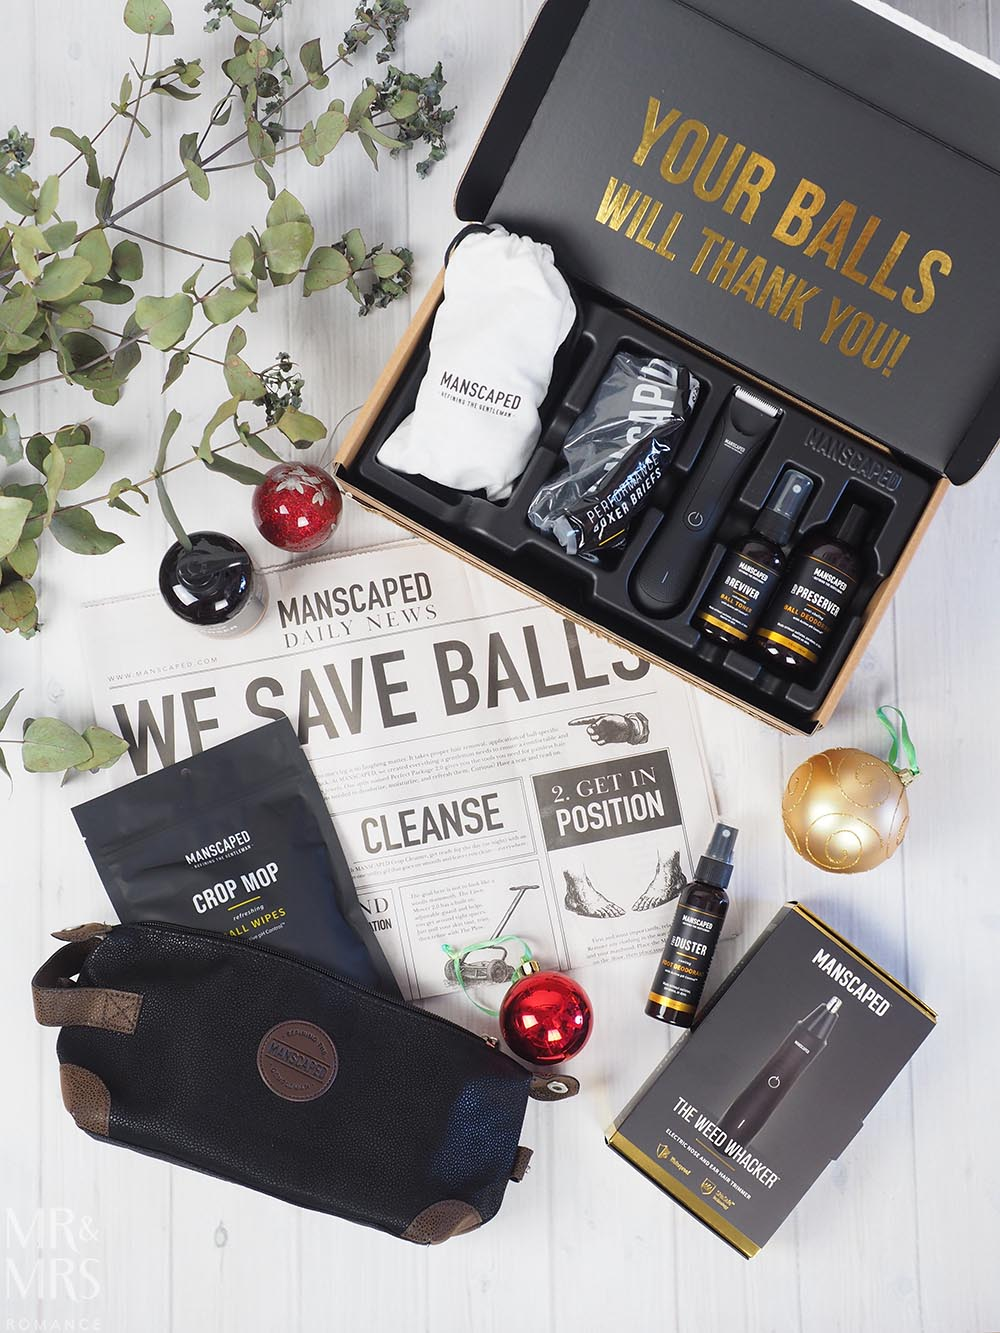 Manscaped Performance Package - Cosmetics gift ideas